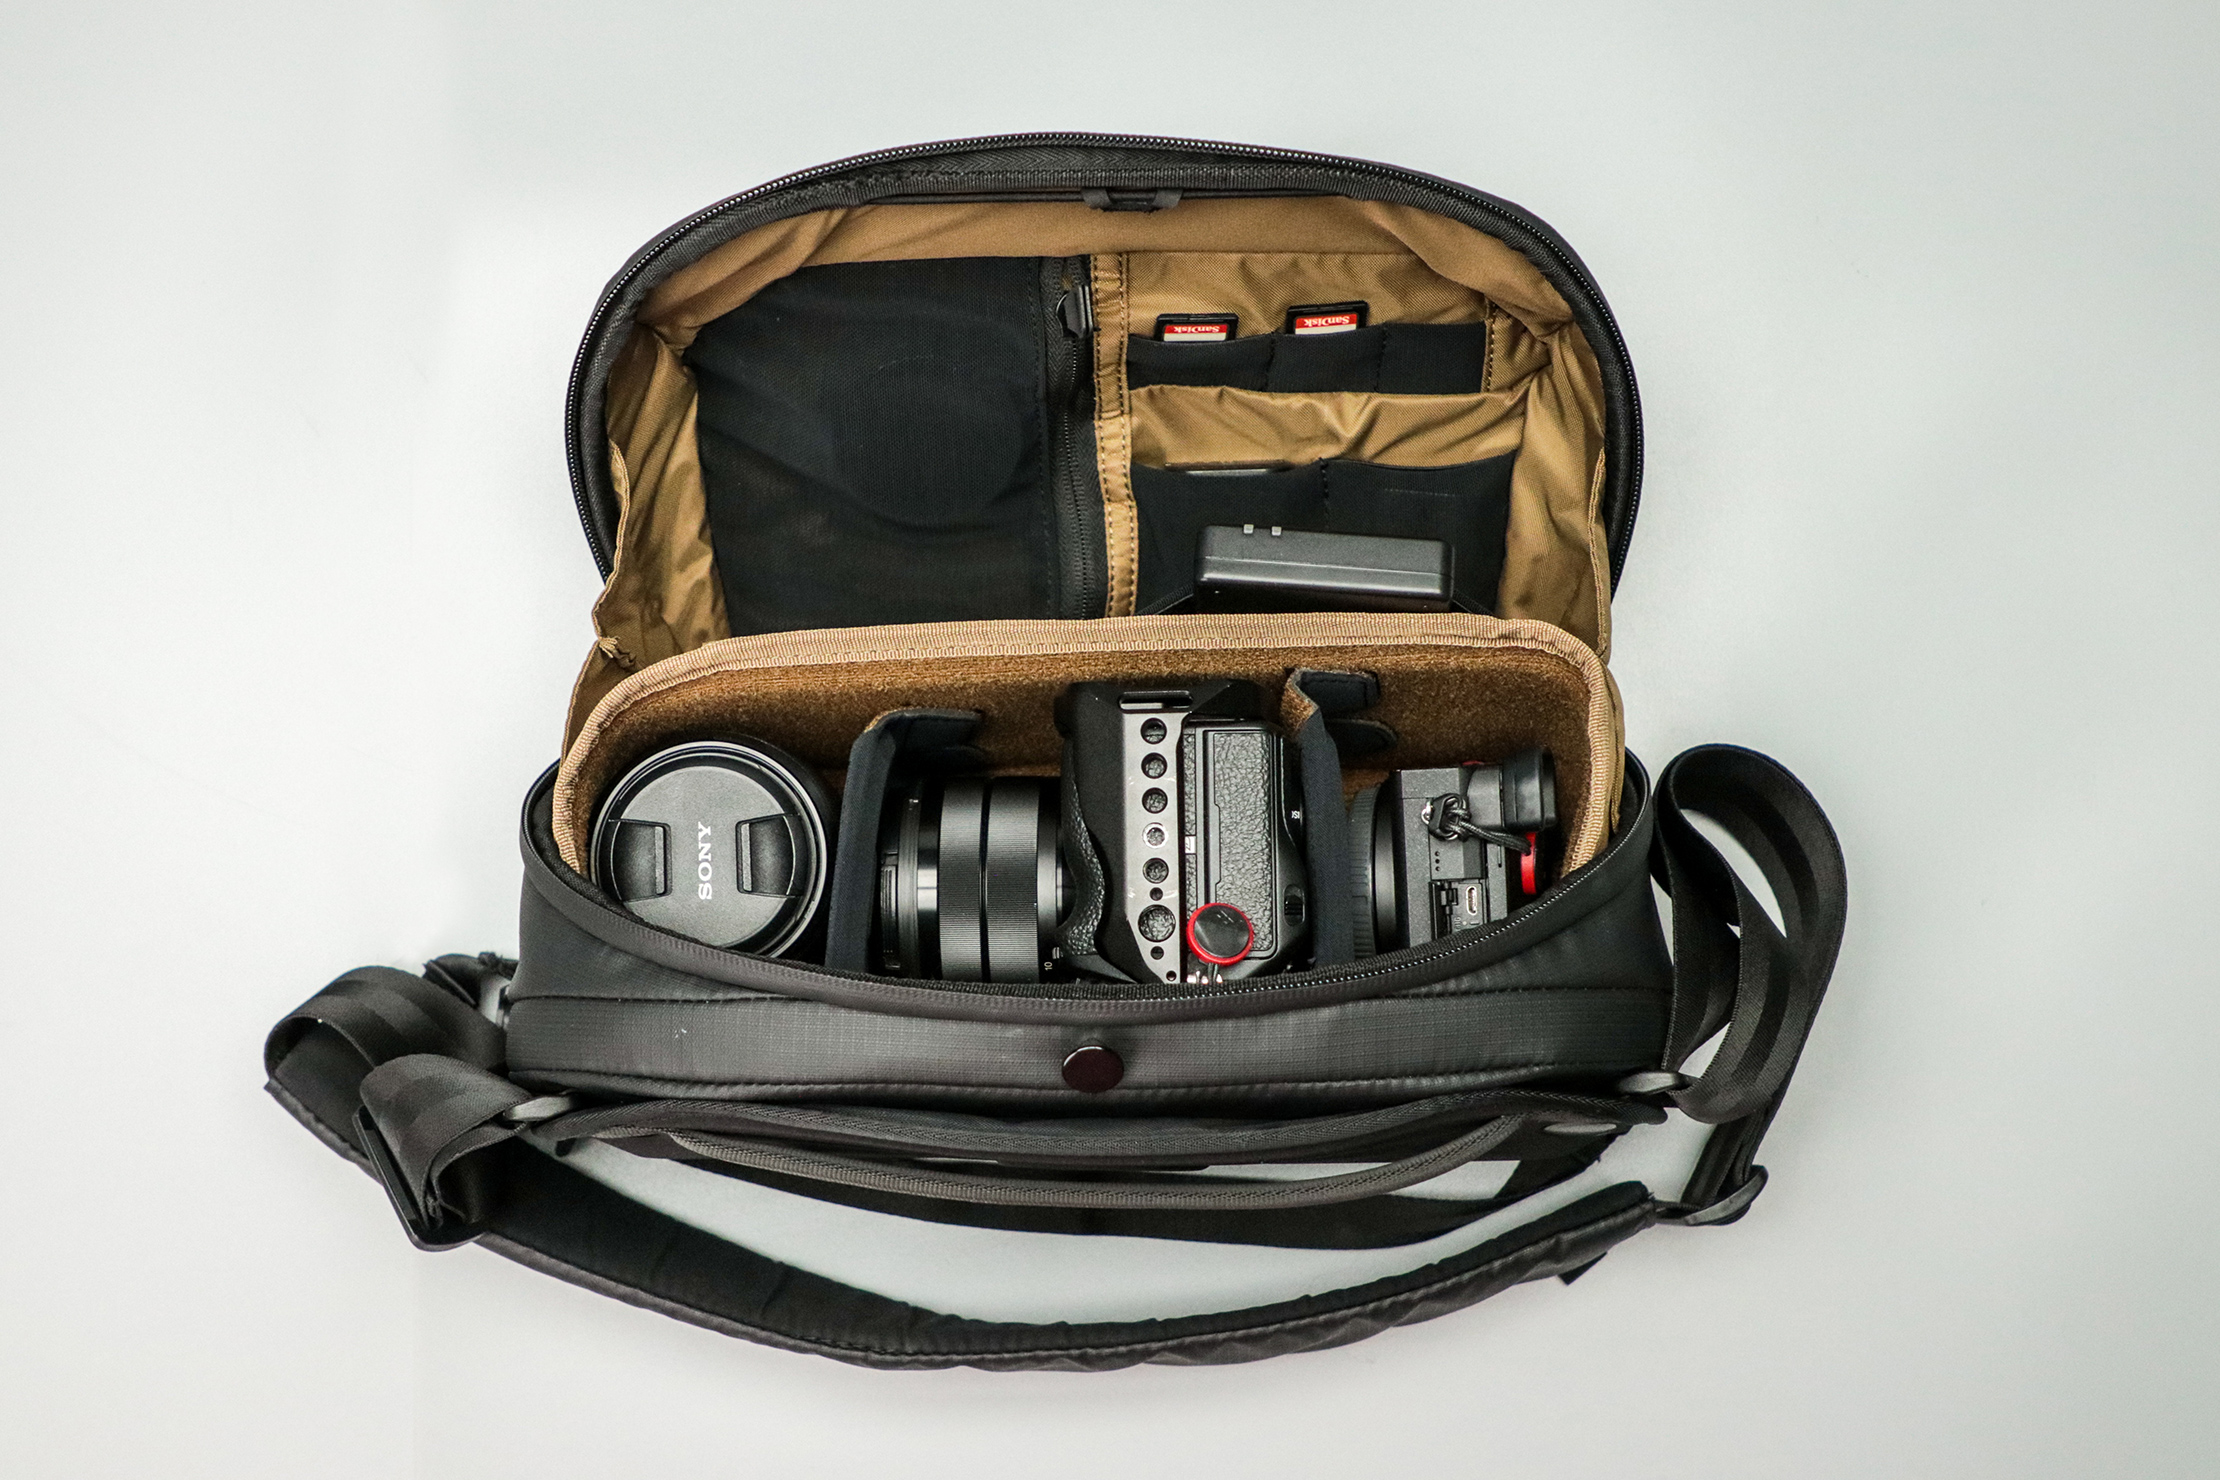 NOMATIC McKinnon Camera Sling 8L Top View Packed with Gear